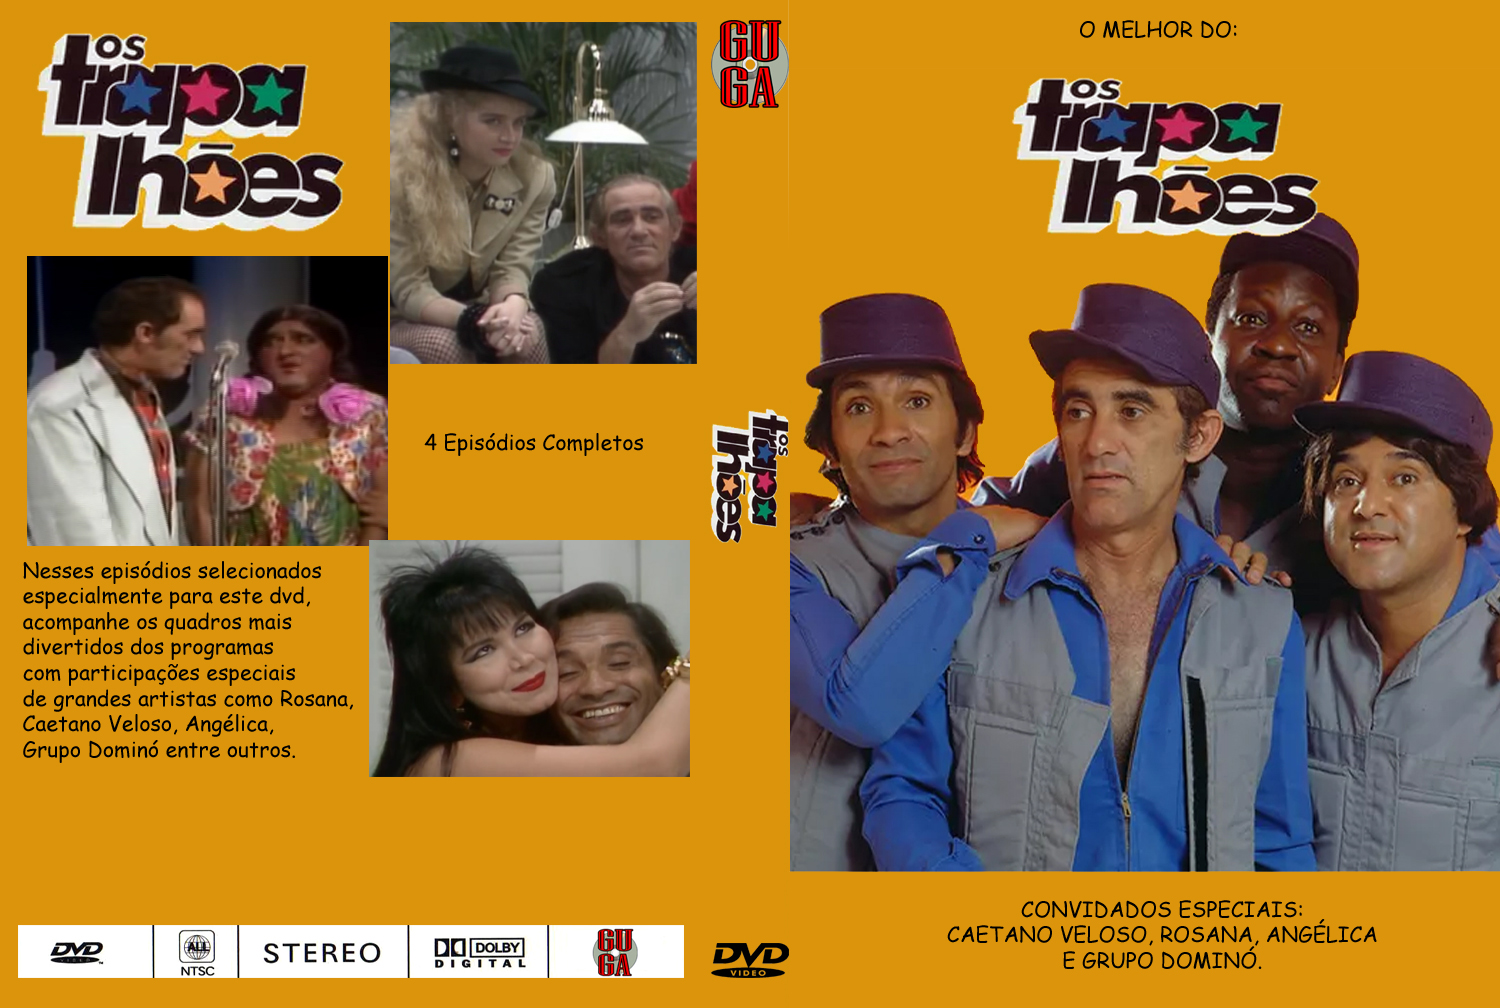 os trapalhoes dvd completo